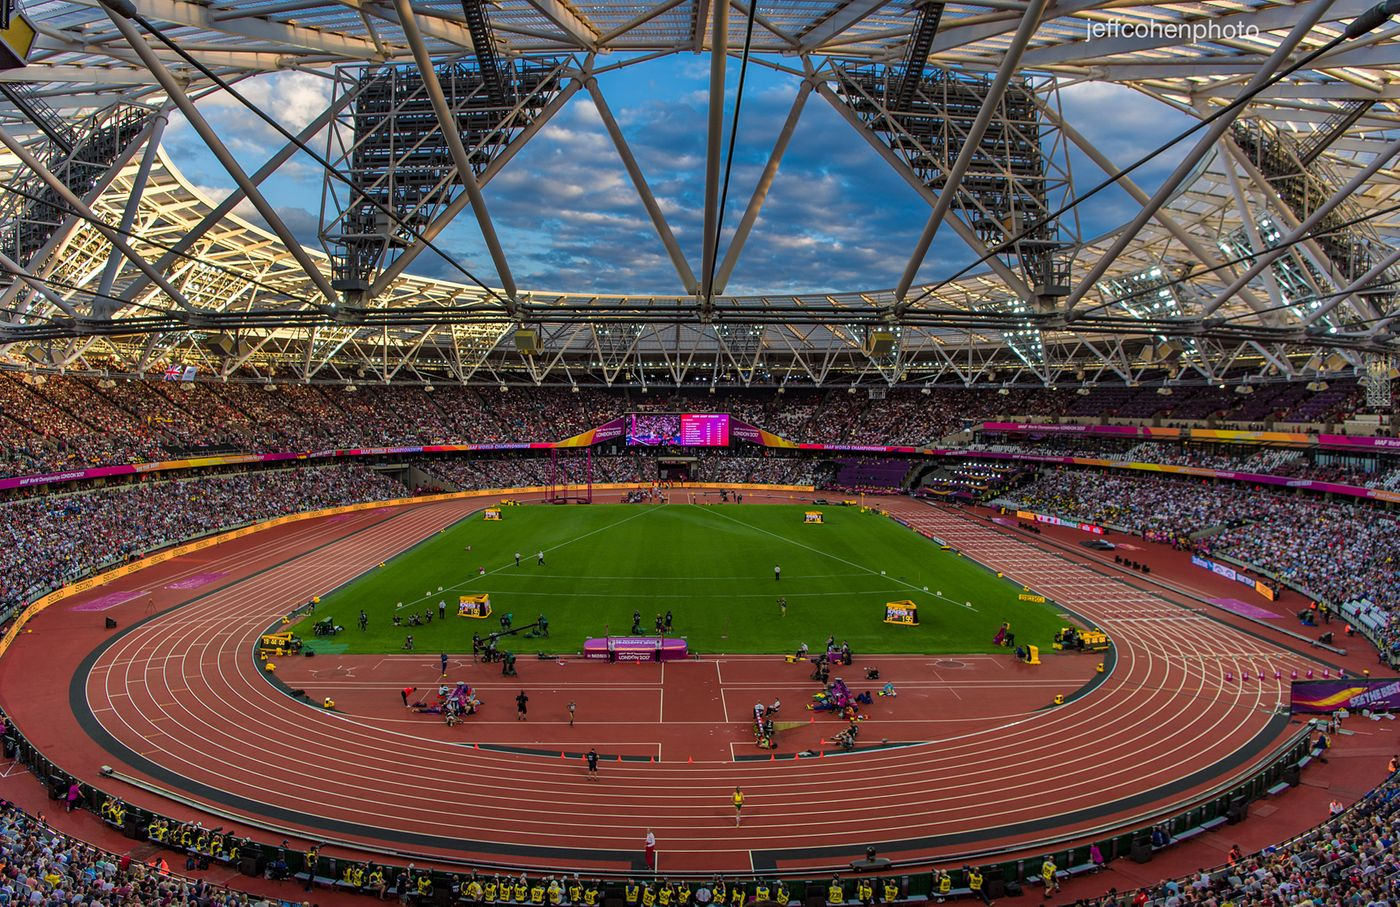 2017-IAAF-WC-London-night-9-stadium--3650--jeff-cohen-photo--web copy.jpg